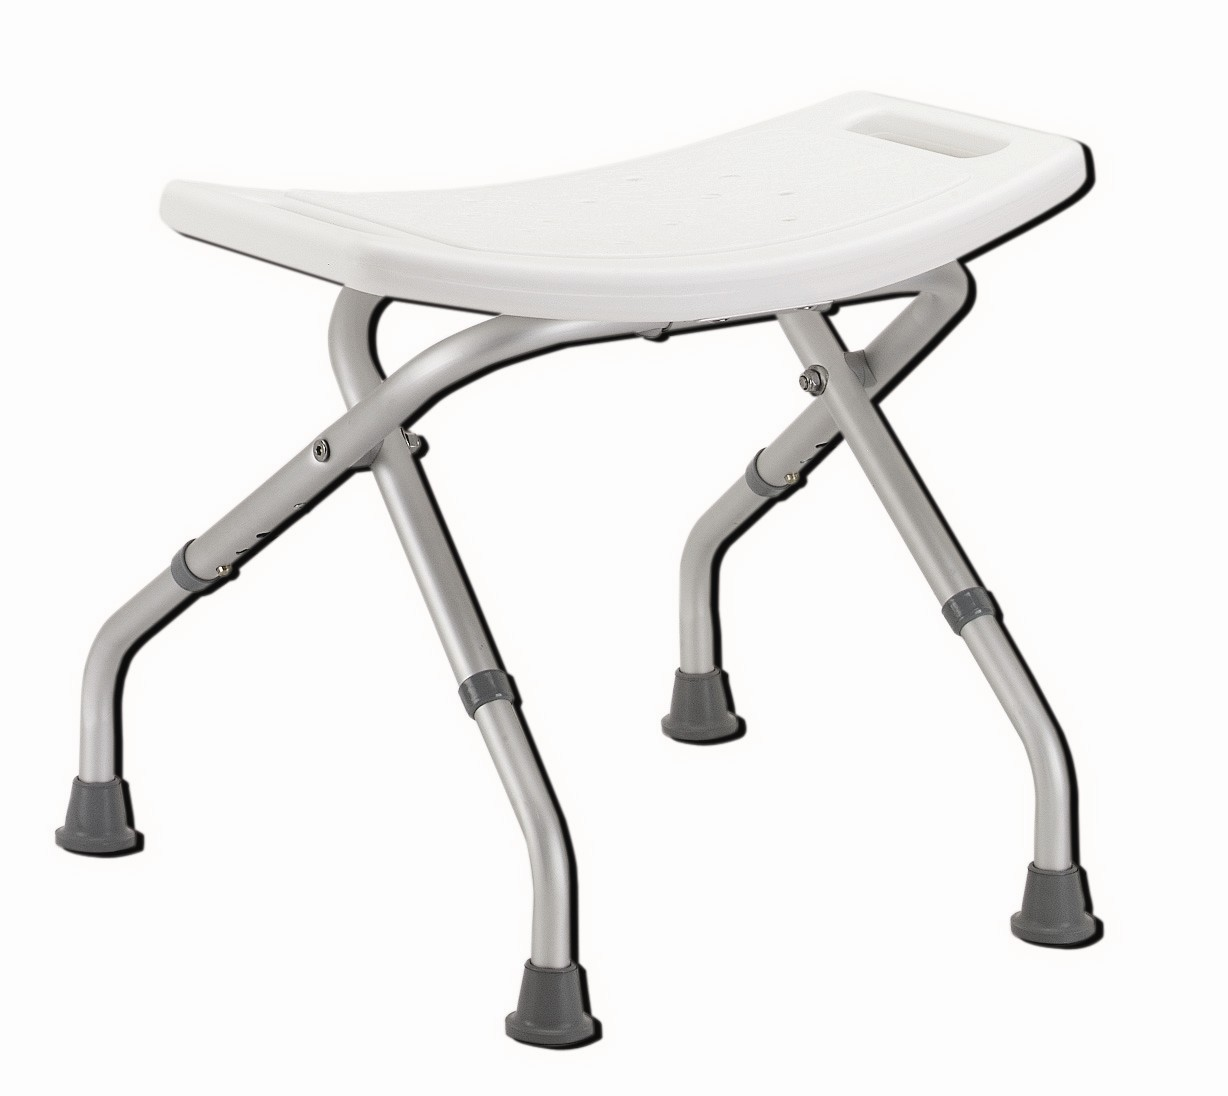 Lightweight Corrosion Proof Folding Bath Seat. Best Tub Transfer Benches   Bath Benches   Shower Bench   ON SALE